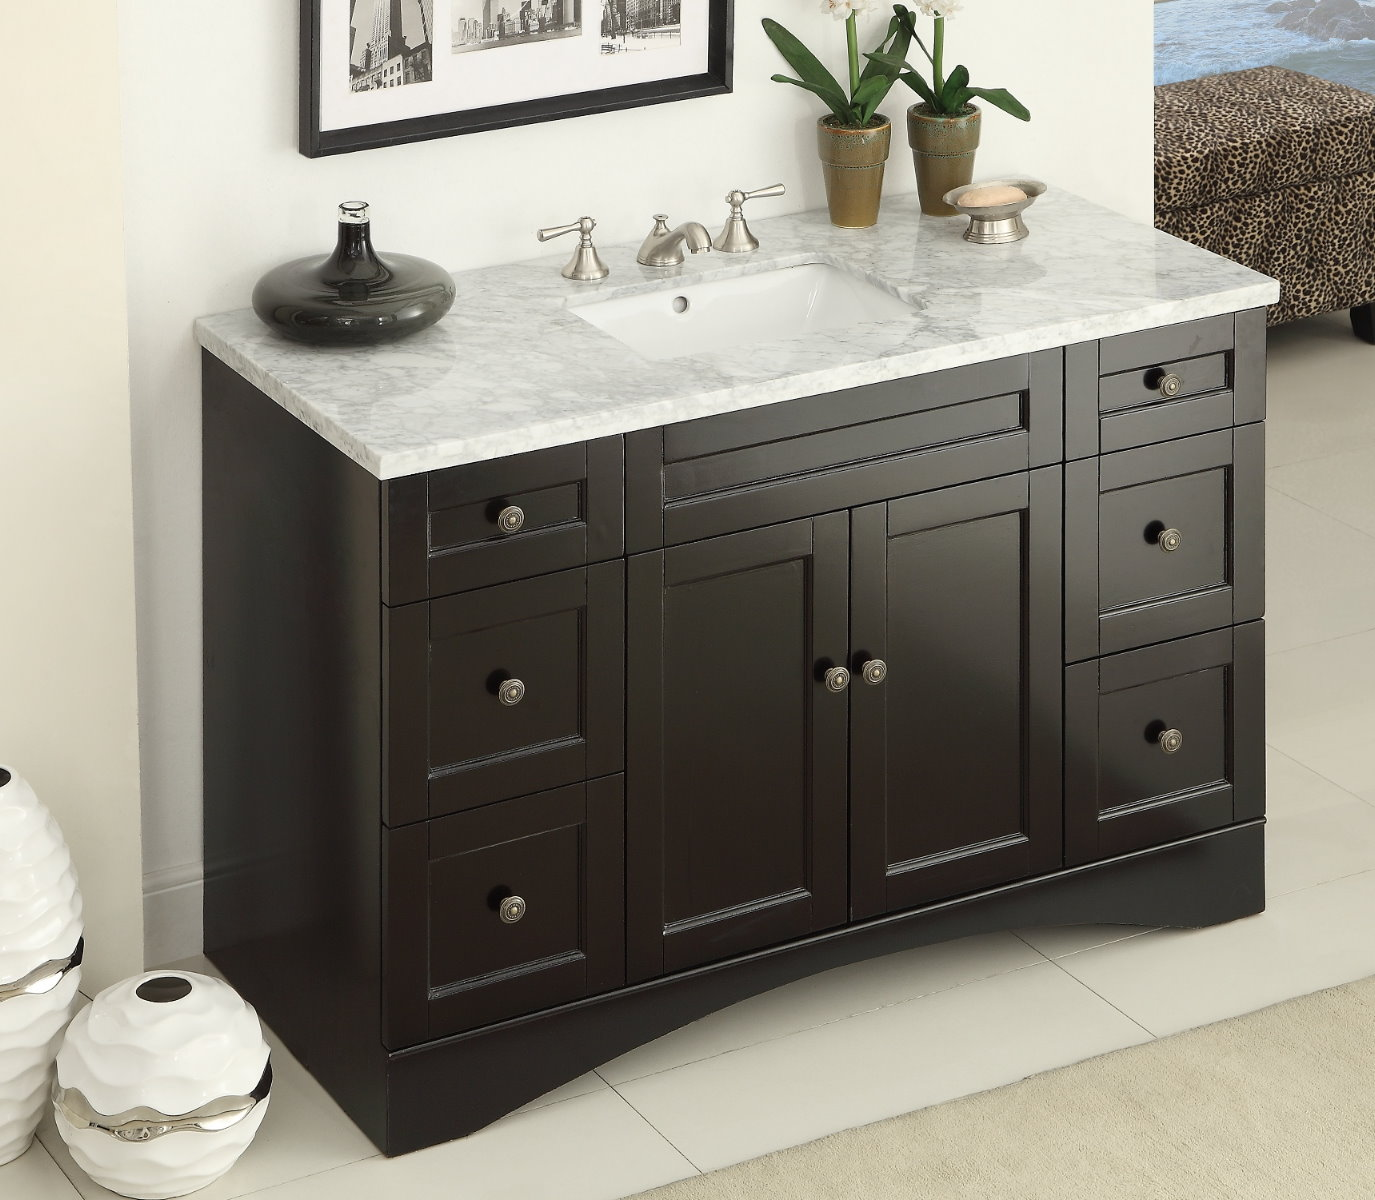 bathroom countertop for fascinating bedroom vanity mesmerizing modern with tops ideas granite